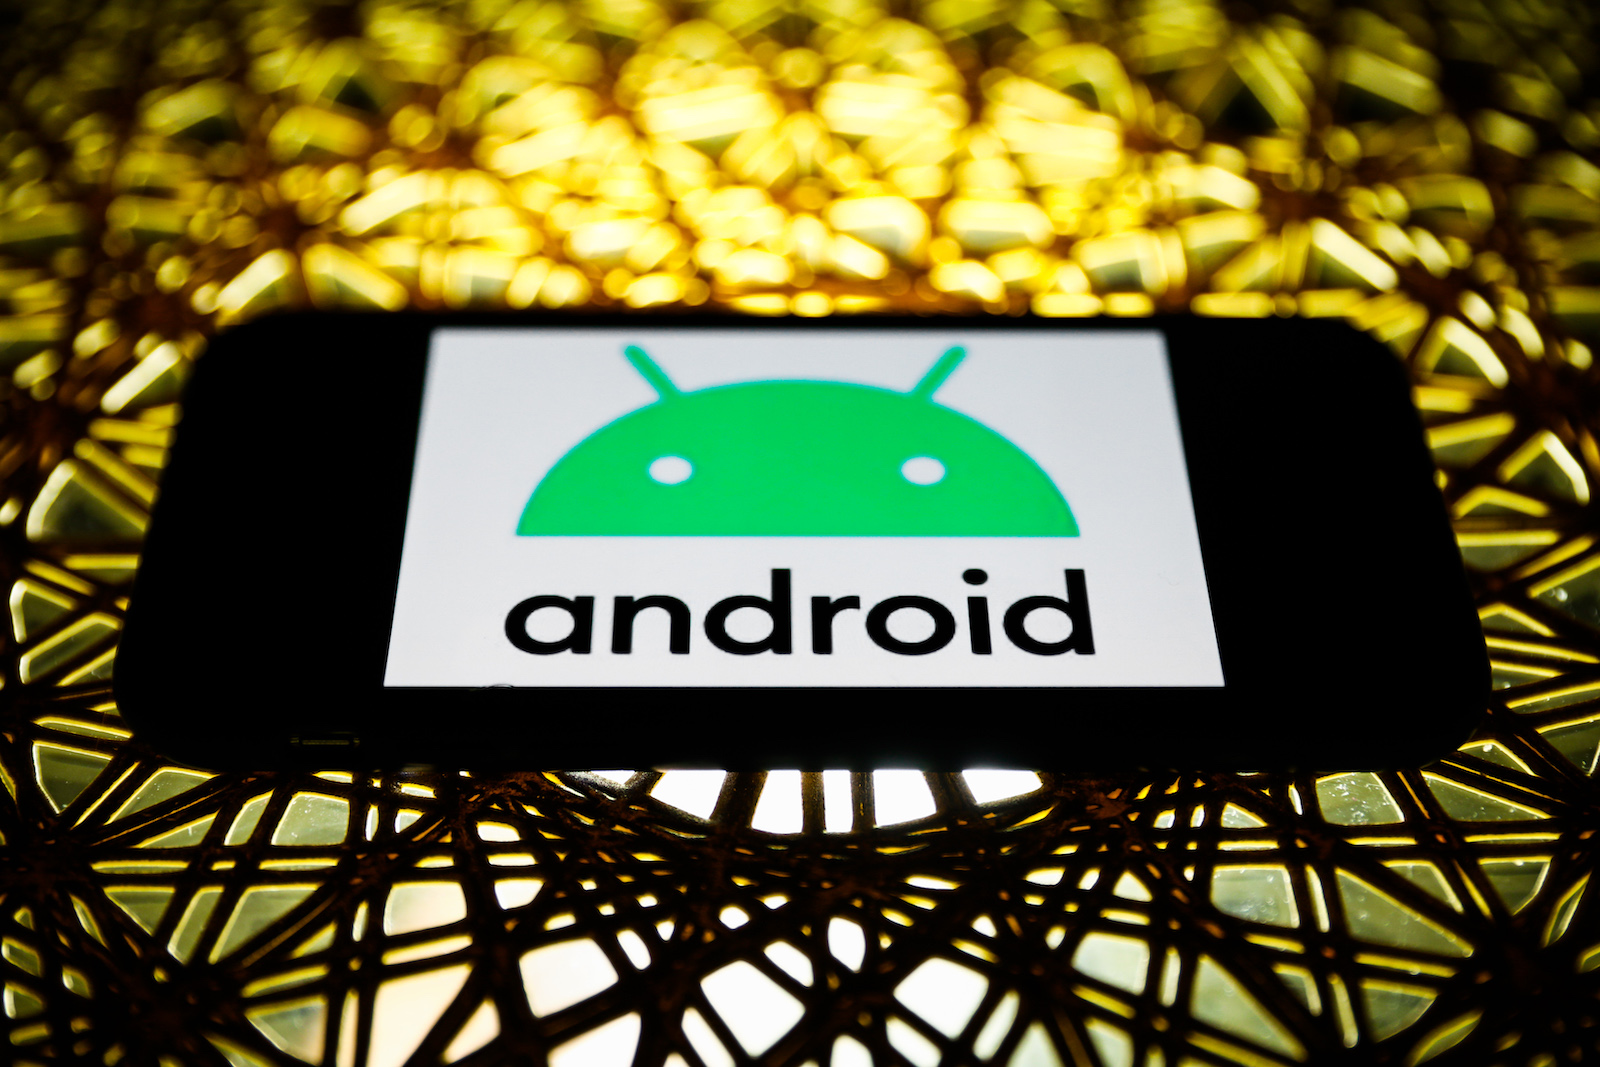 Android logo is seen displayed on a phone screen in this illustration photo taken in Poland on November 30, 2020. (Photo by Jakub Porzycki/NurPhoto via Getty Images)